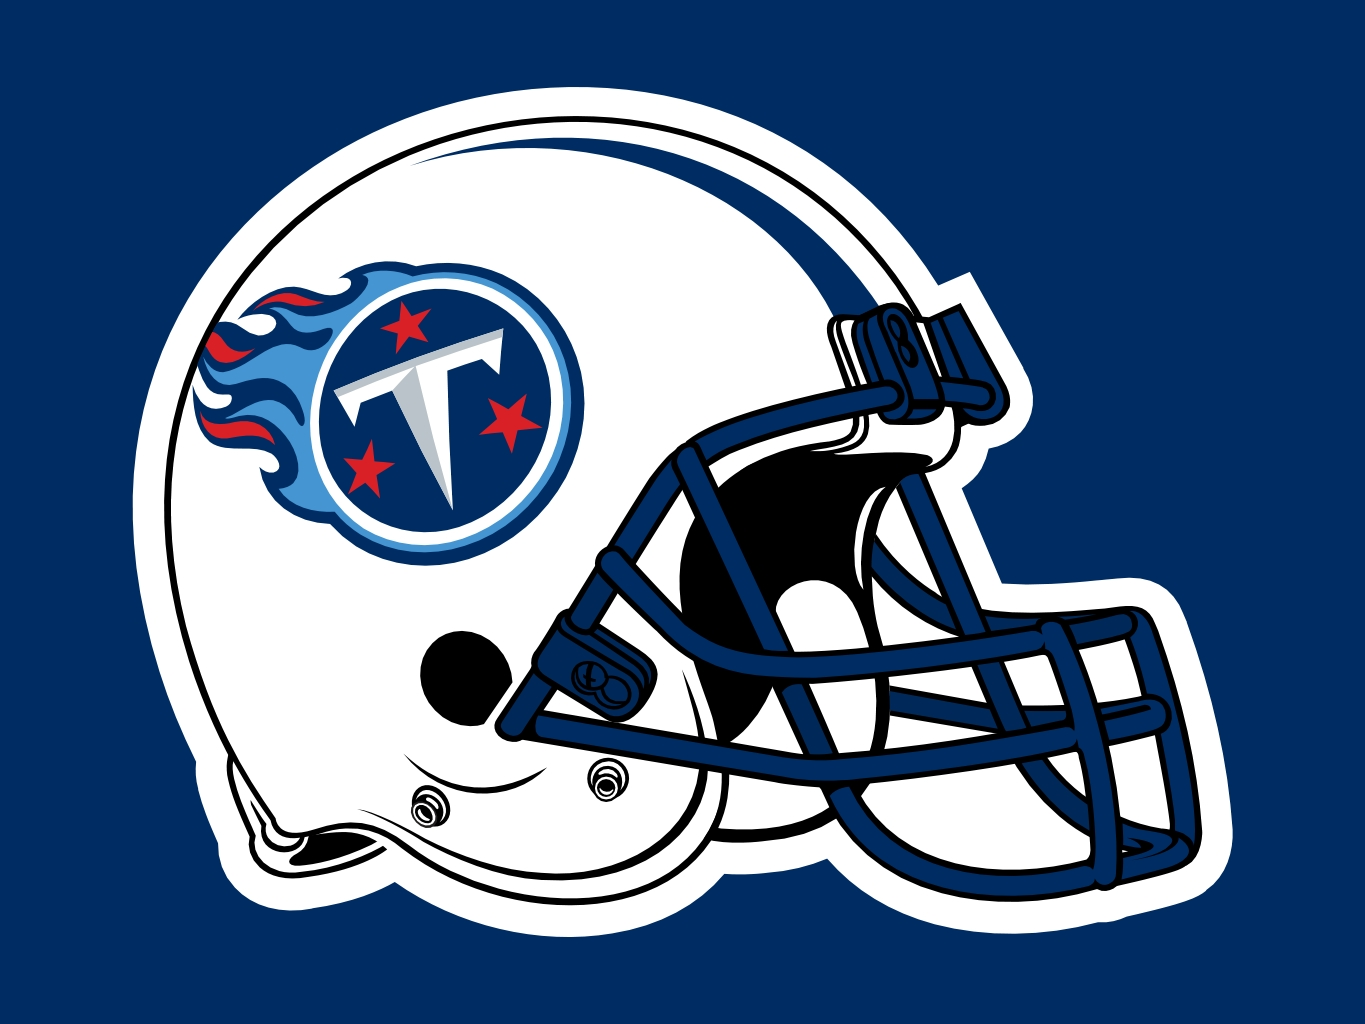 NFL and The titans